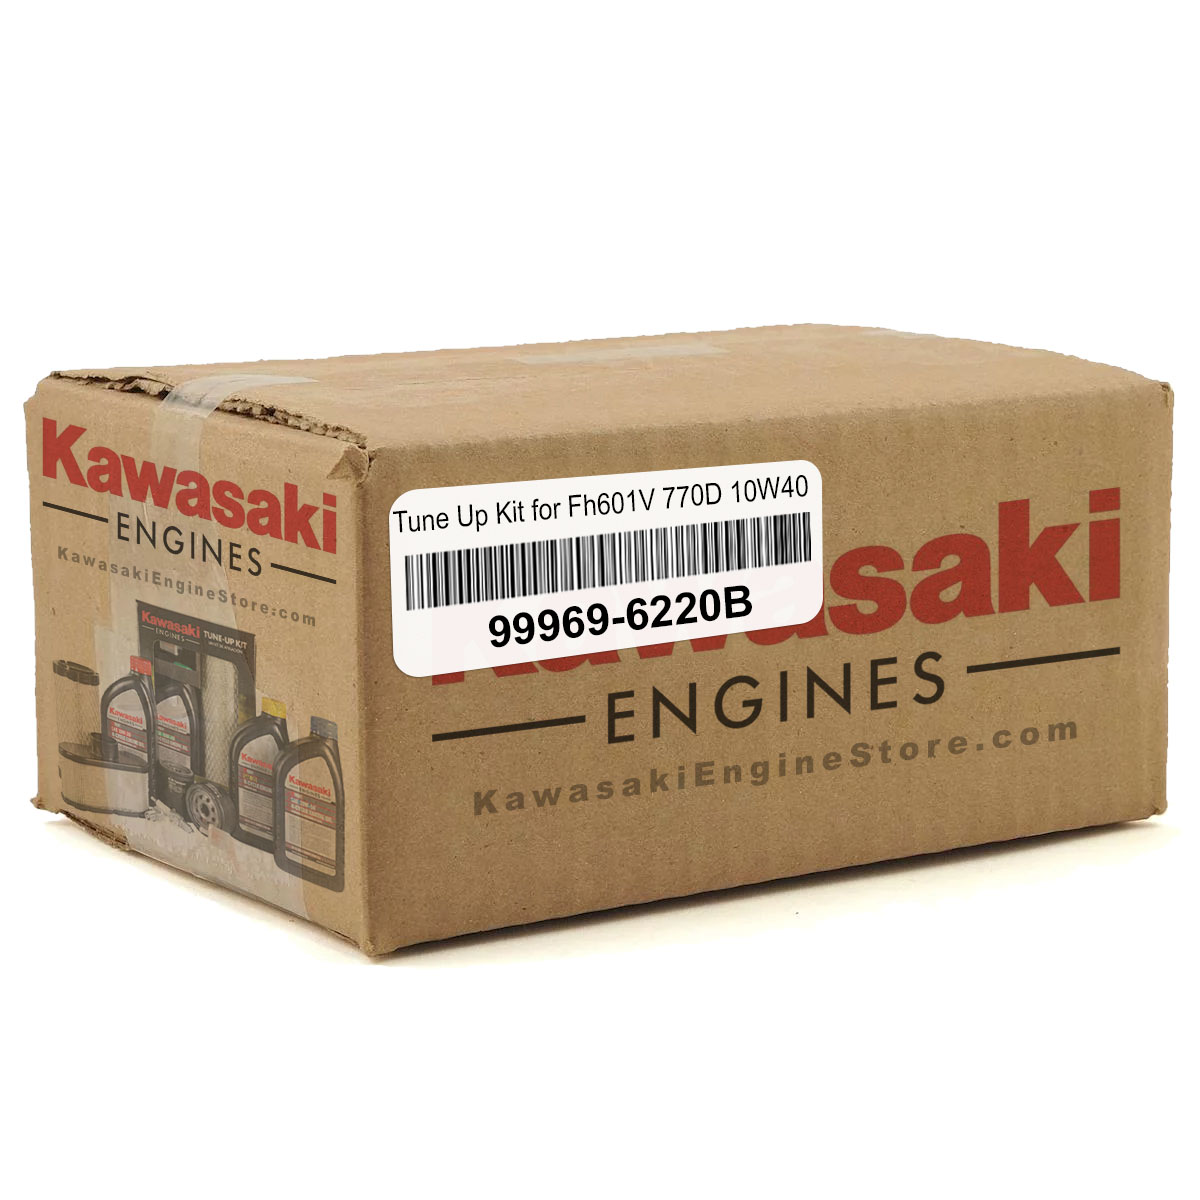 Kawasaki 99969-6220B Tune Up Kit for Fh601V 770D 10W40